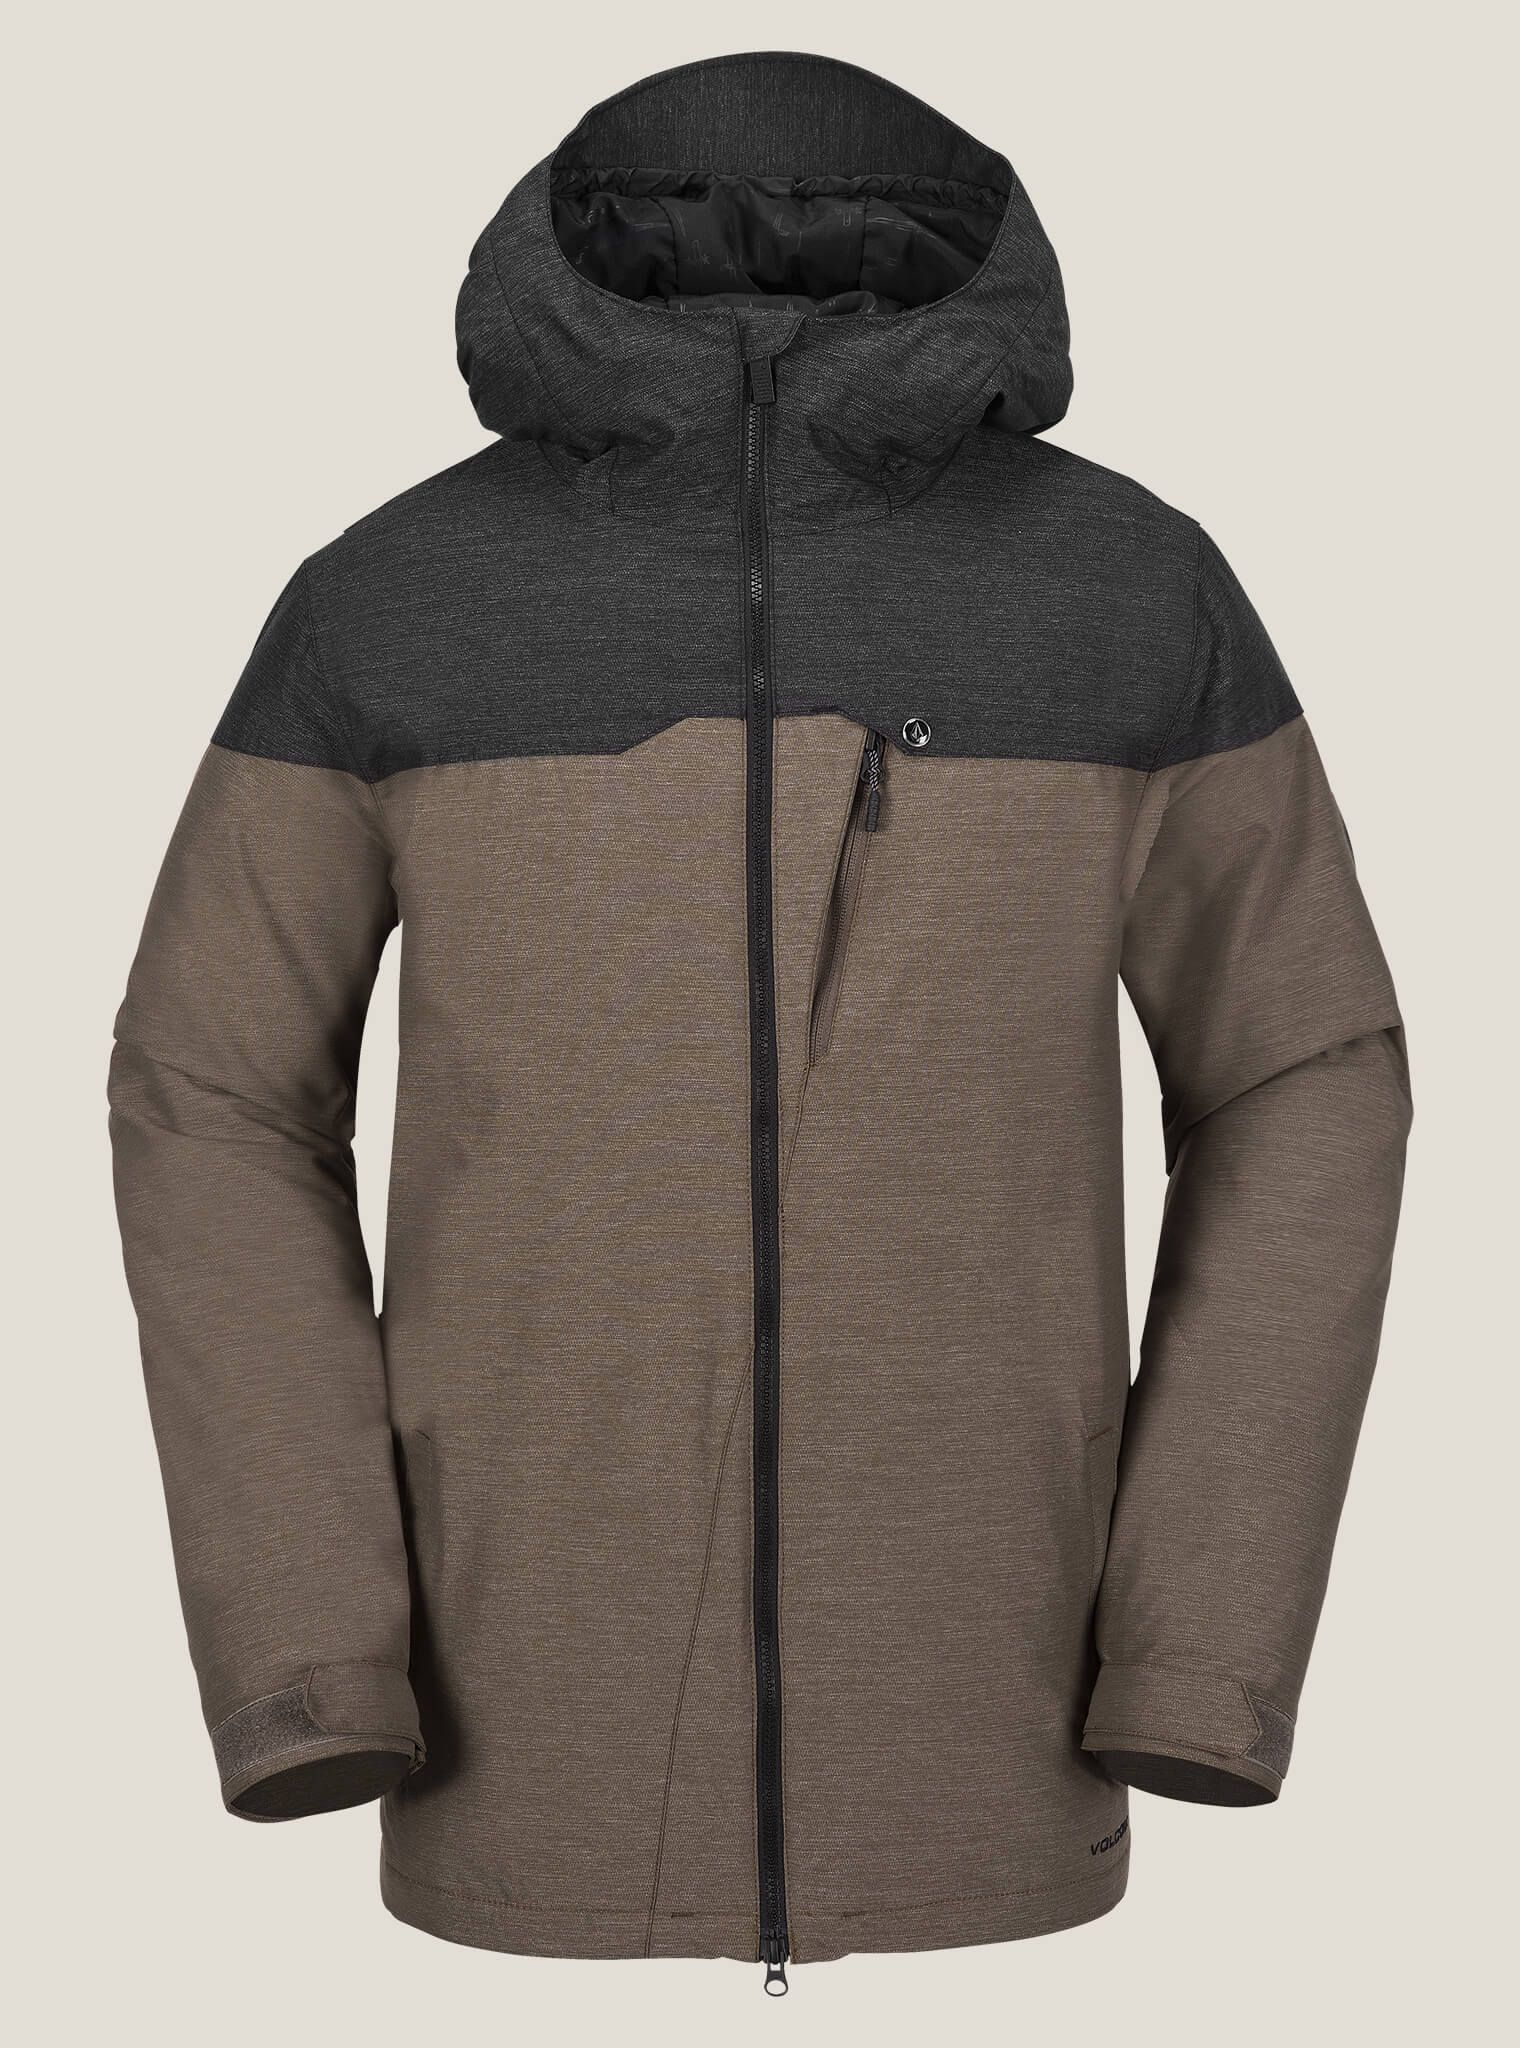 Shop volcom for snowboard jackets and pants - 88 Gear water sports